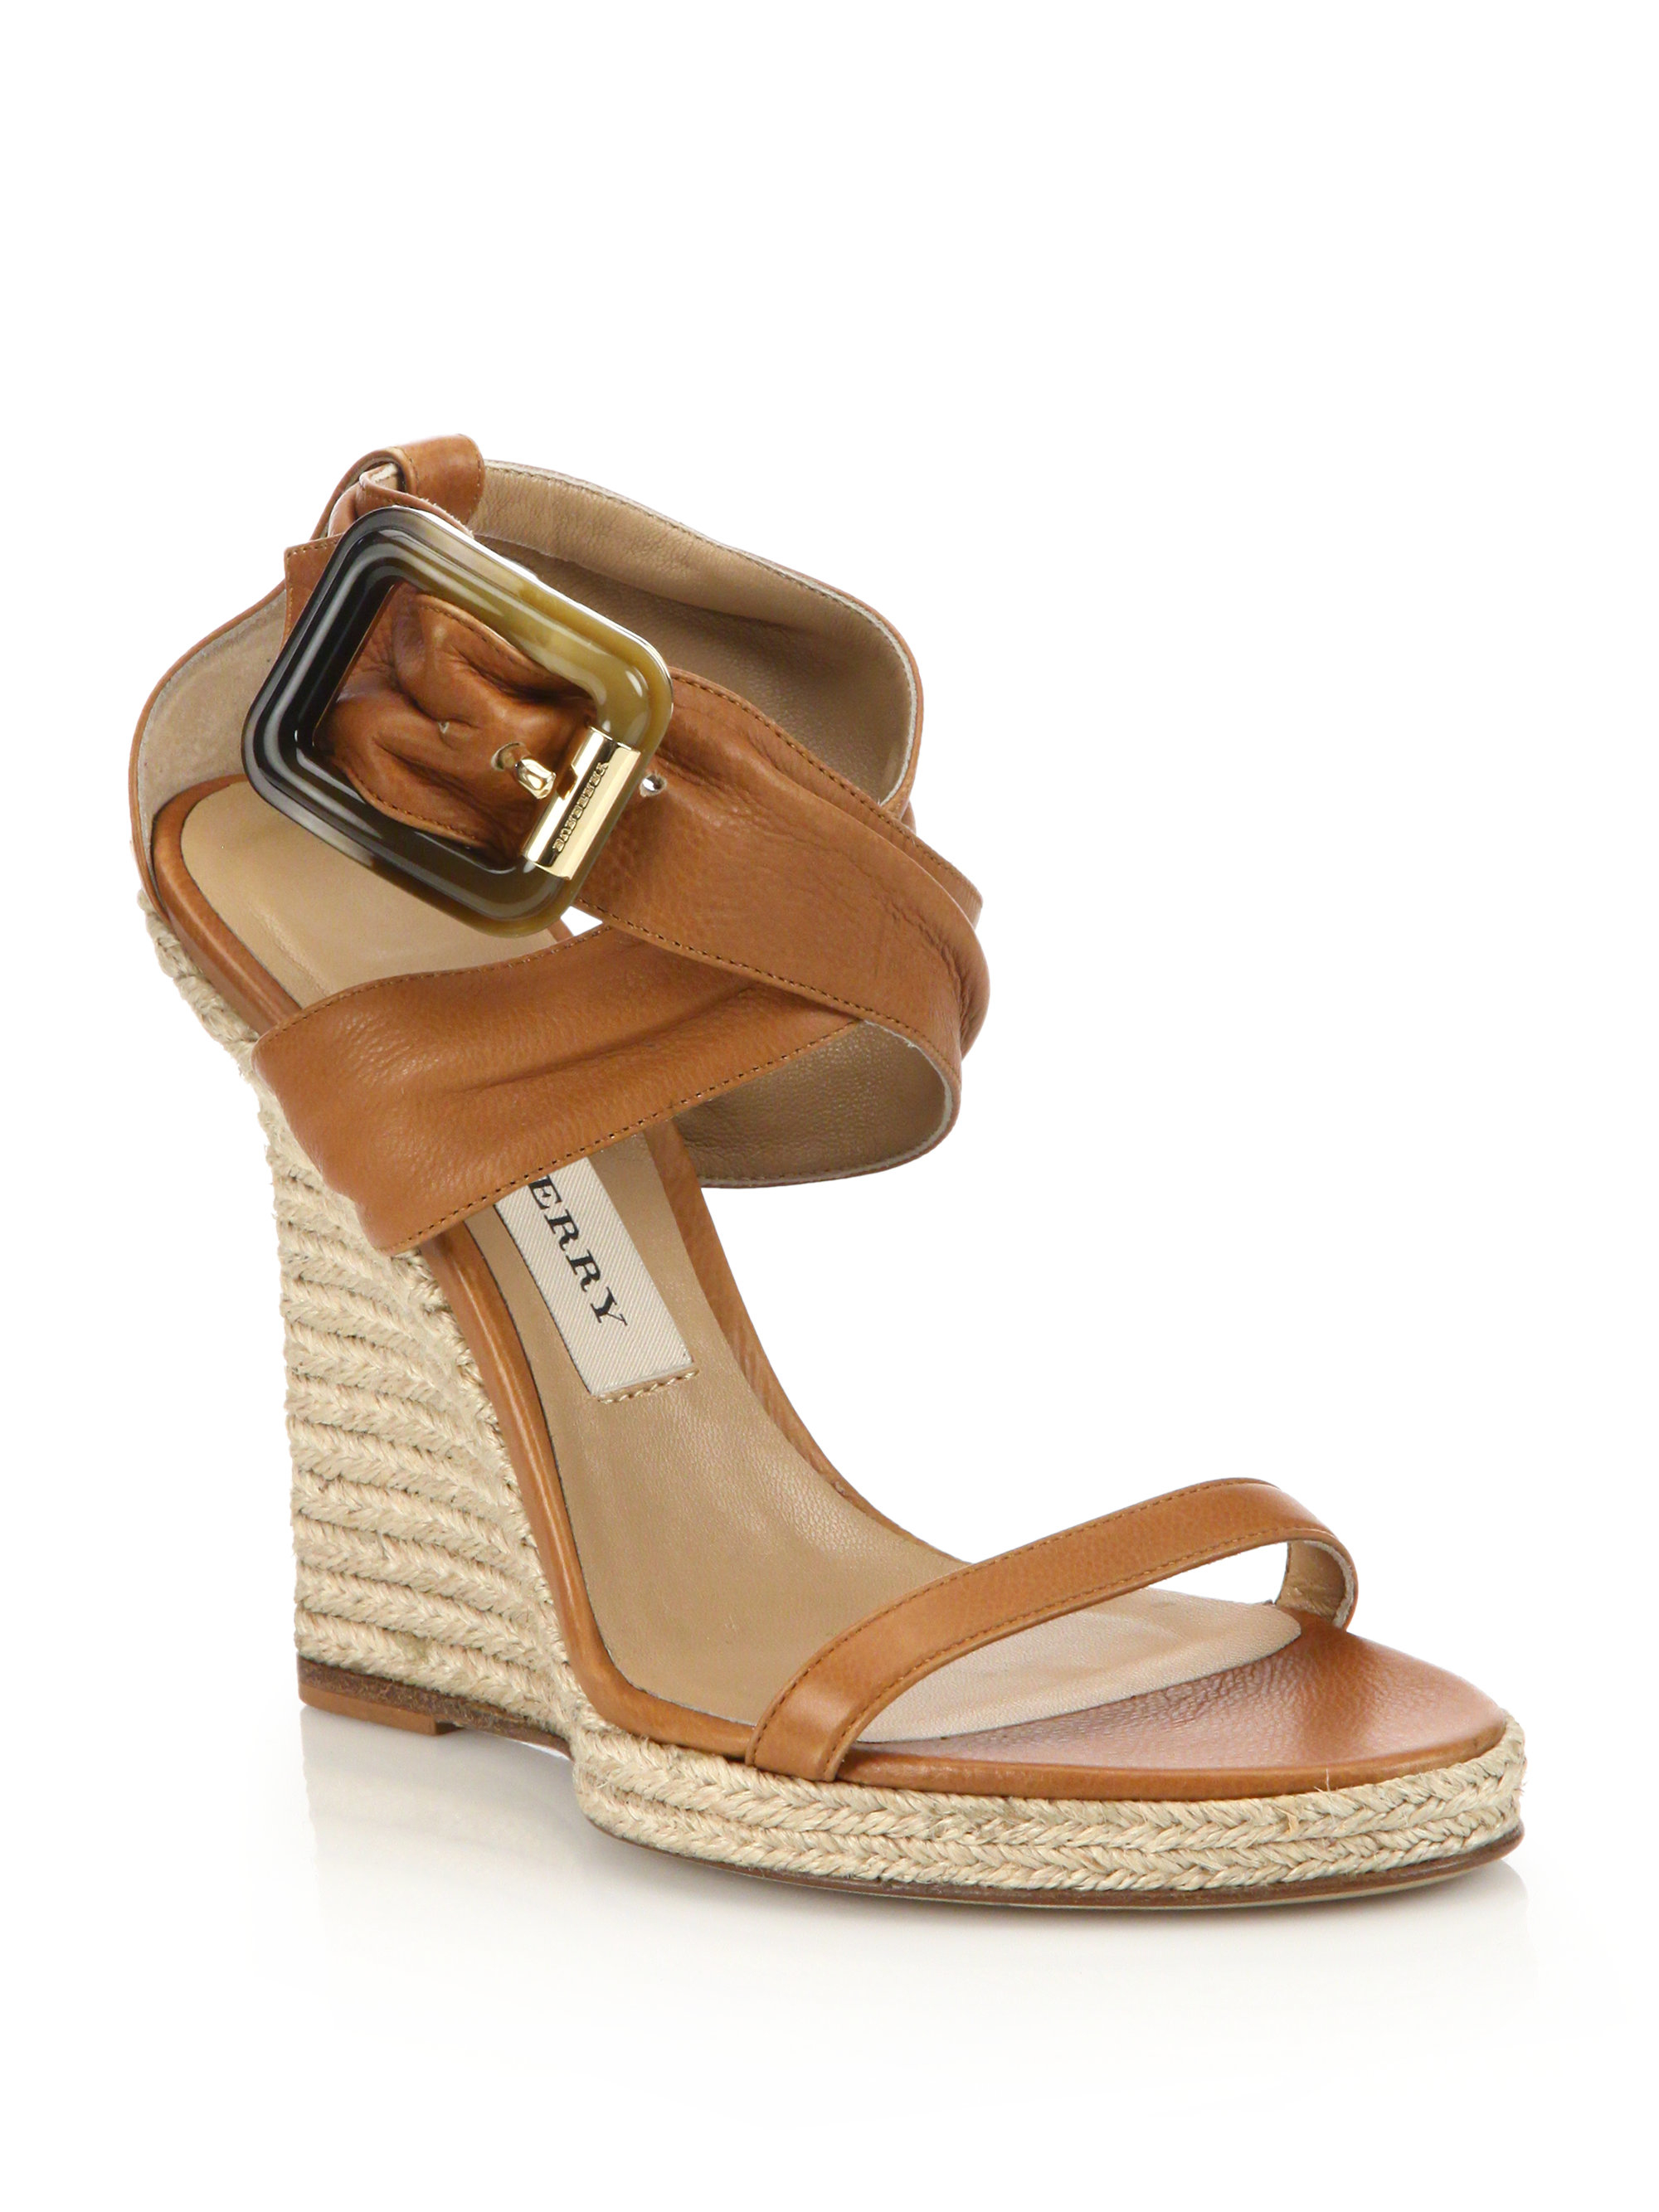 9f23df75cd Burberry Catsbrook Leather Espadrille Wedge Sandals in Brown - Lyst